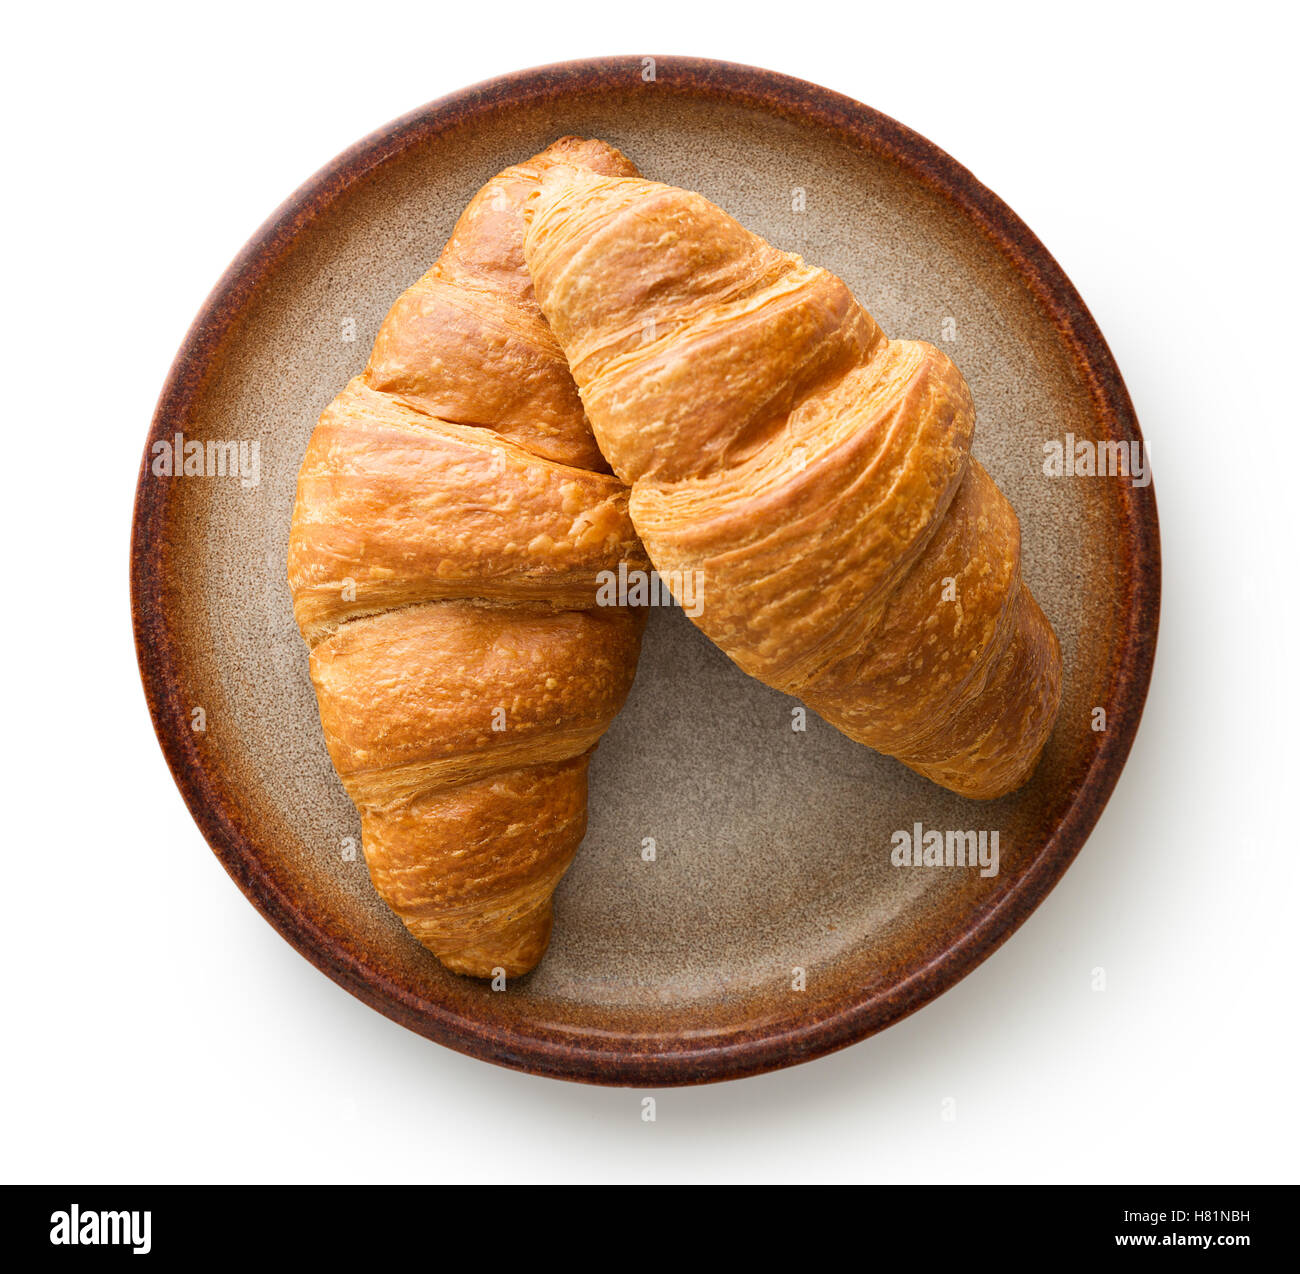 Tasty buttery croissants on plate. Isolated on white background. - Stock Image